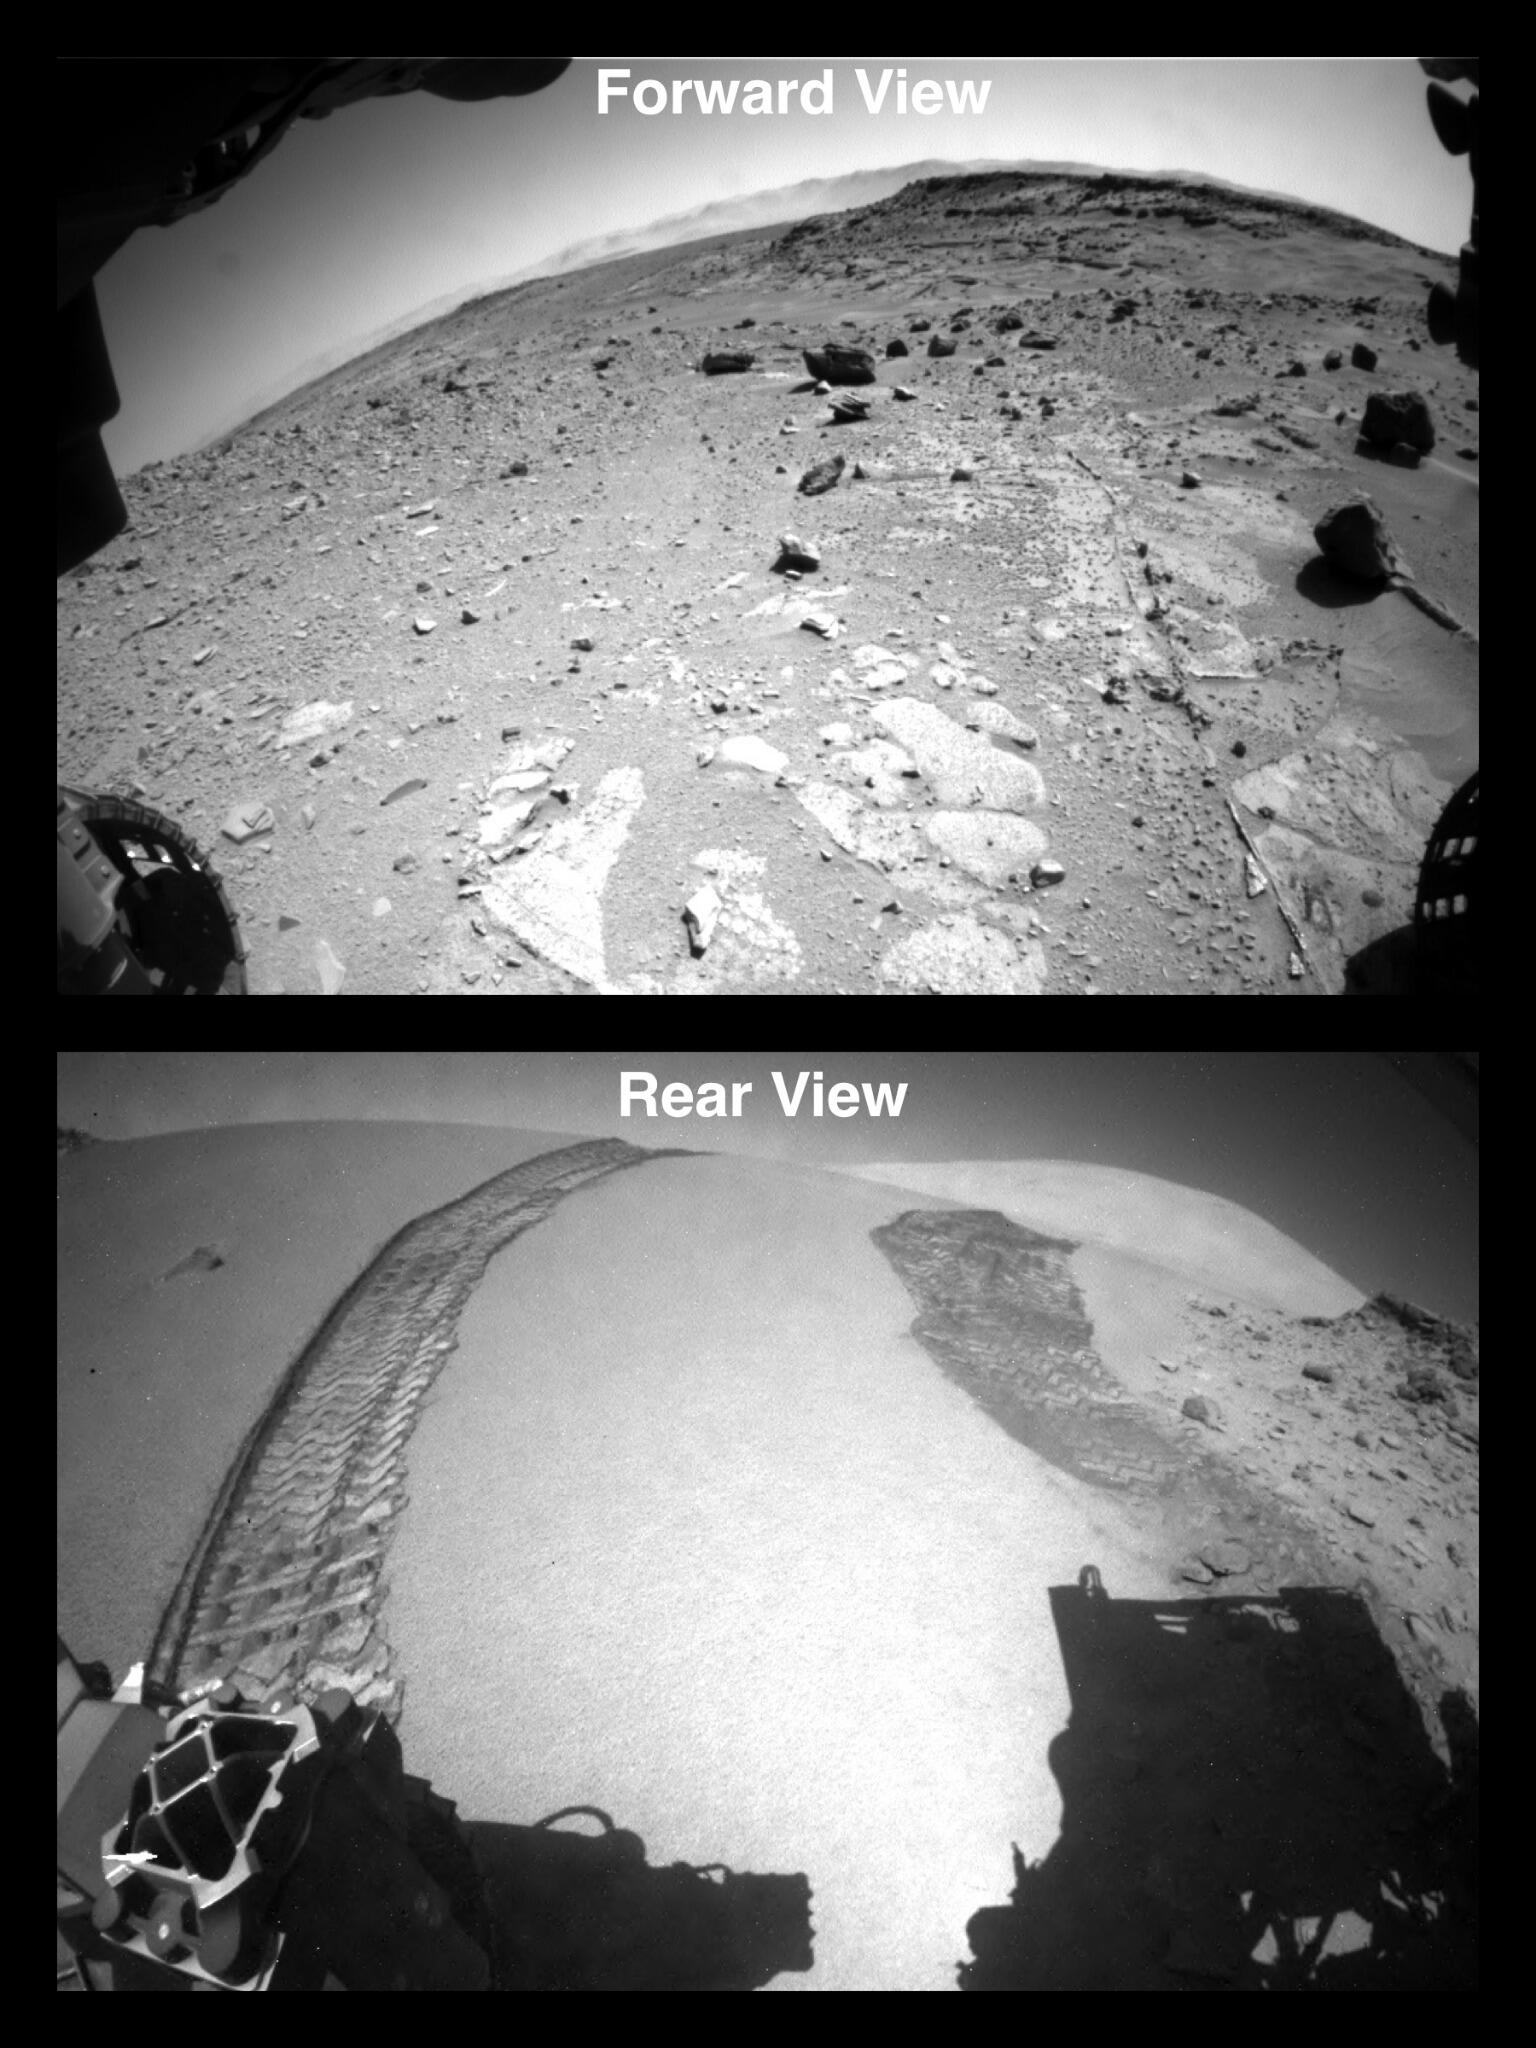 """I'm over the moon that I'm over the dune! I successfully crossed the """"Dingo Gap"""" sand dune on Mars. http://t.co/KEGLK79HU6"""